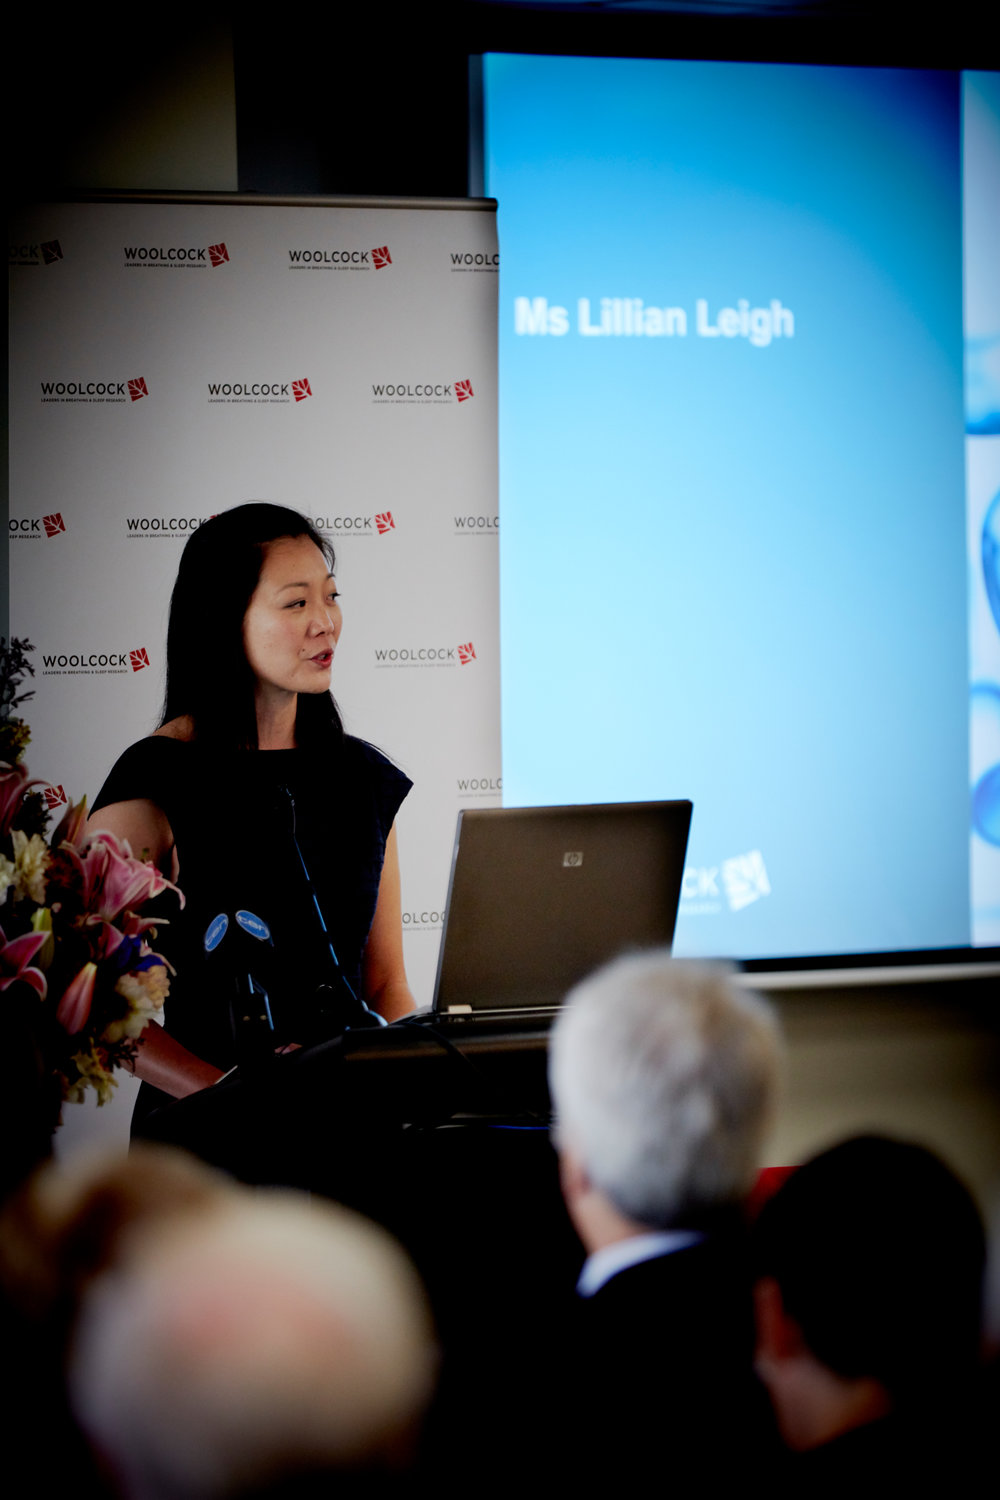 Ms Lillian Leigh at the Woolcock Centre for Lung Cancer Research launch on Wednesday, 18 April 2018.